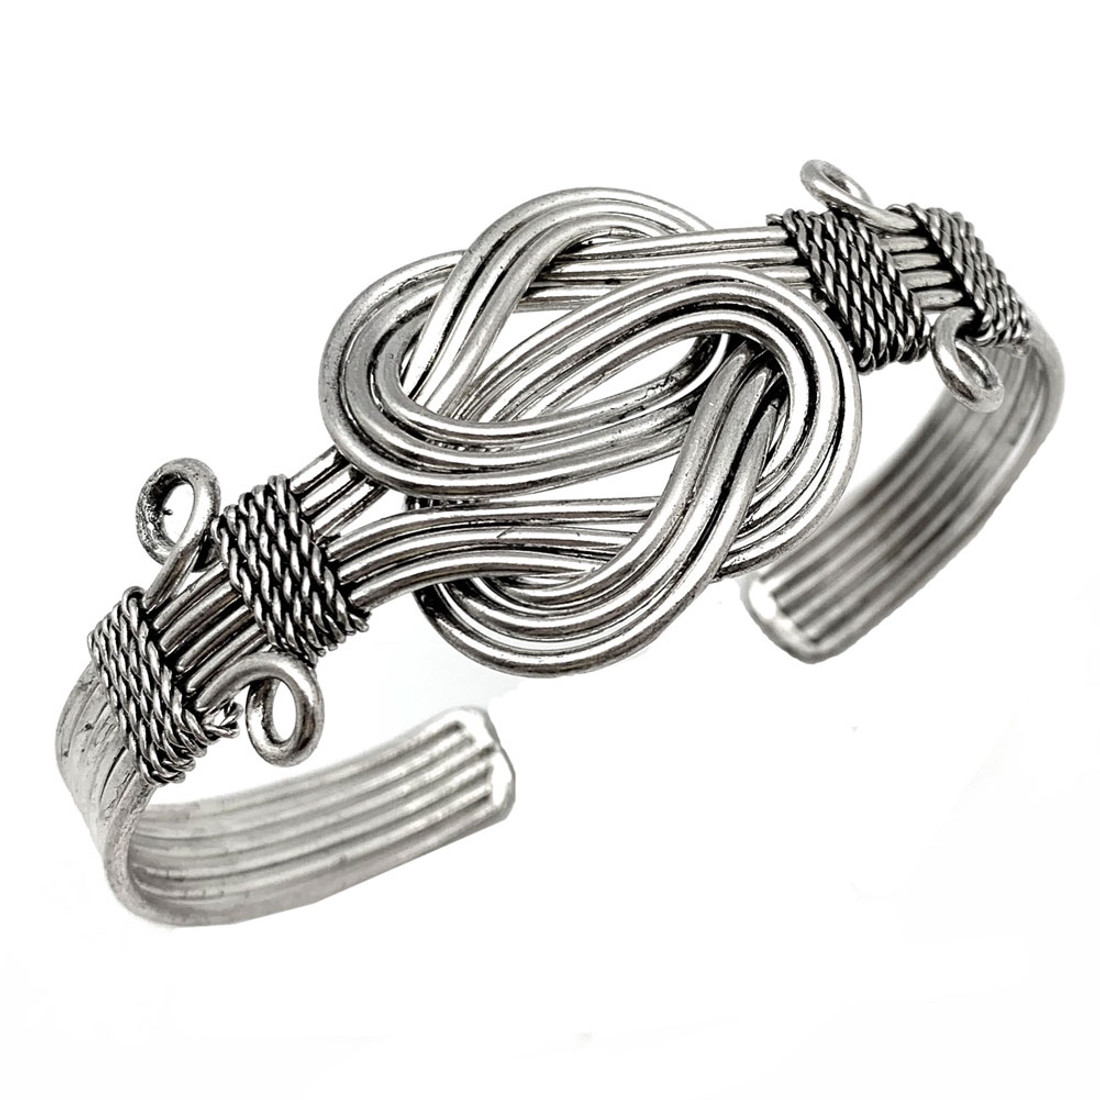 Infinity Knot Silver Plated Adjustable Cuff Bracelet